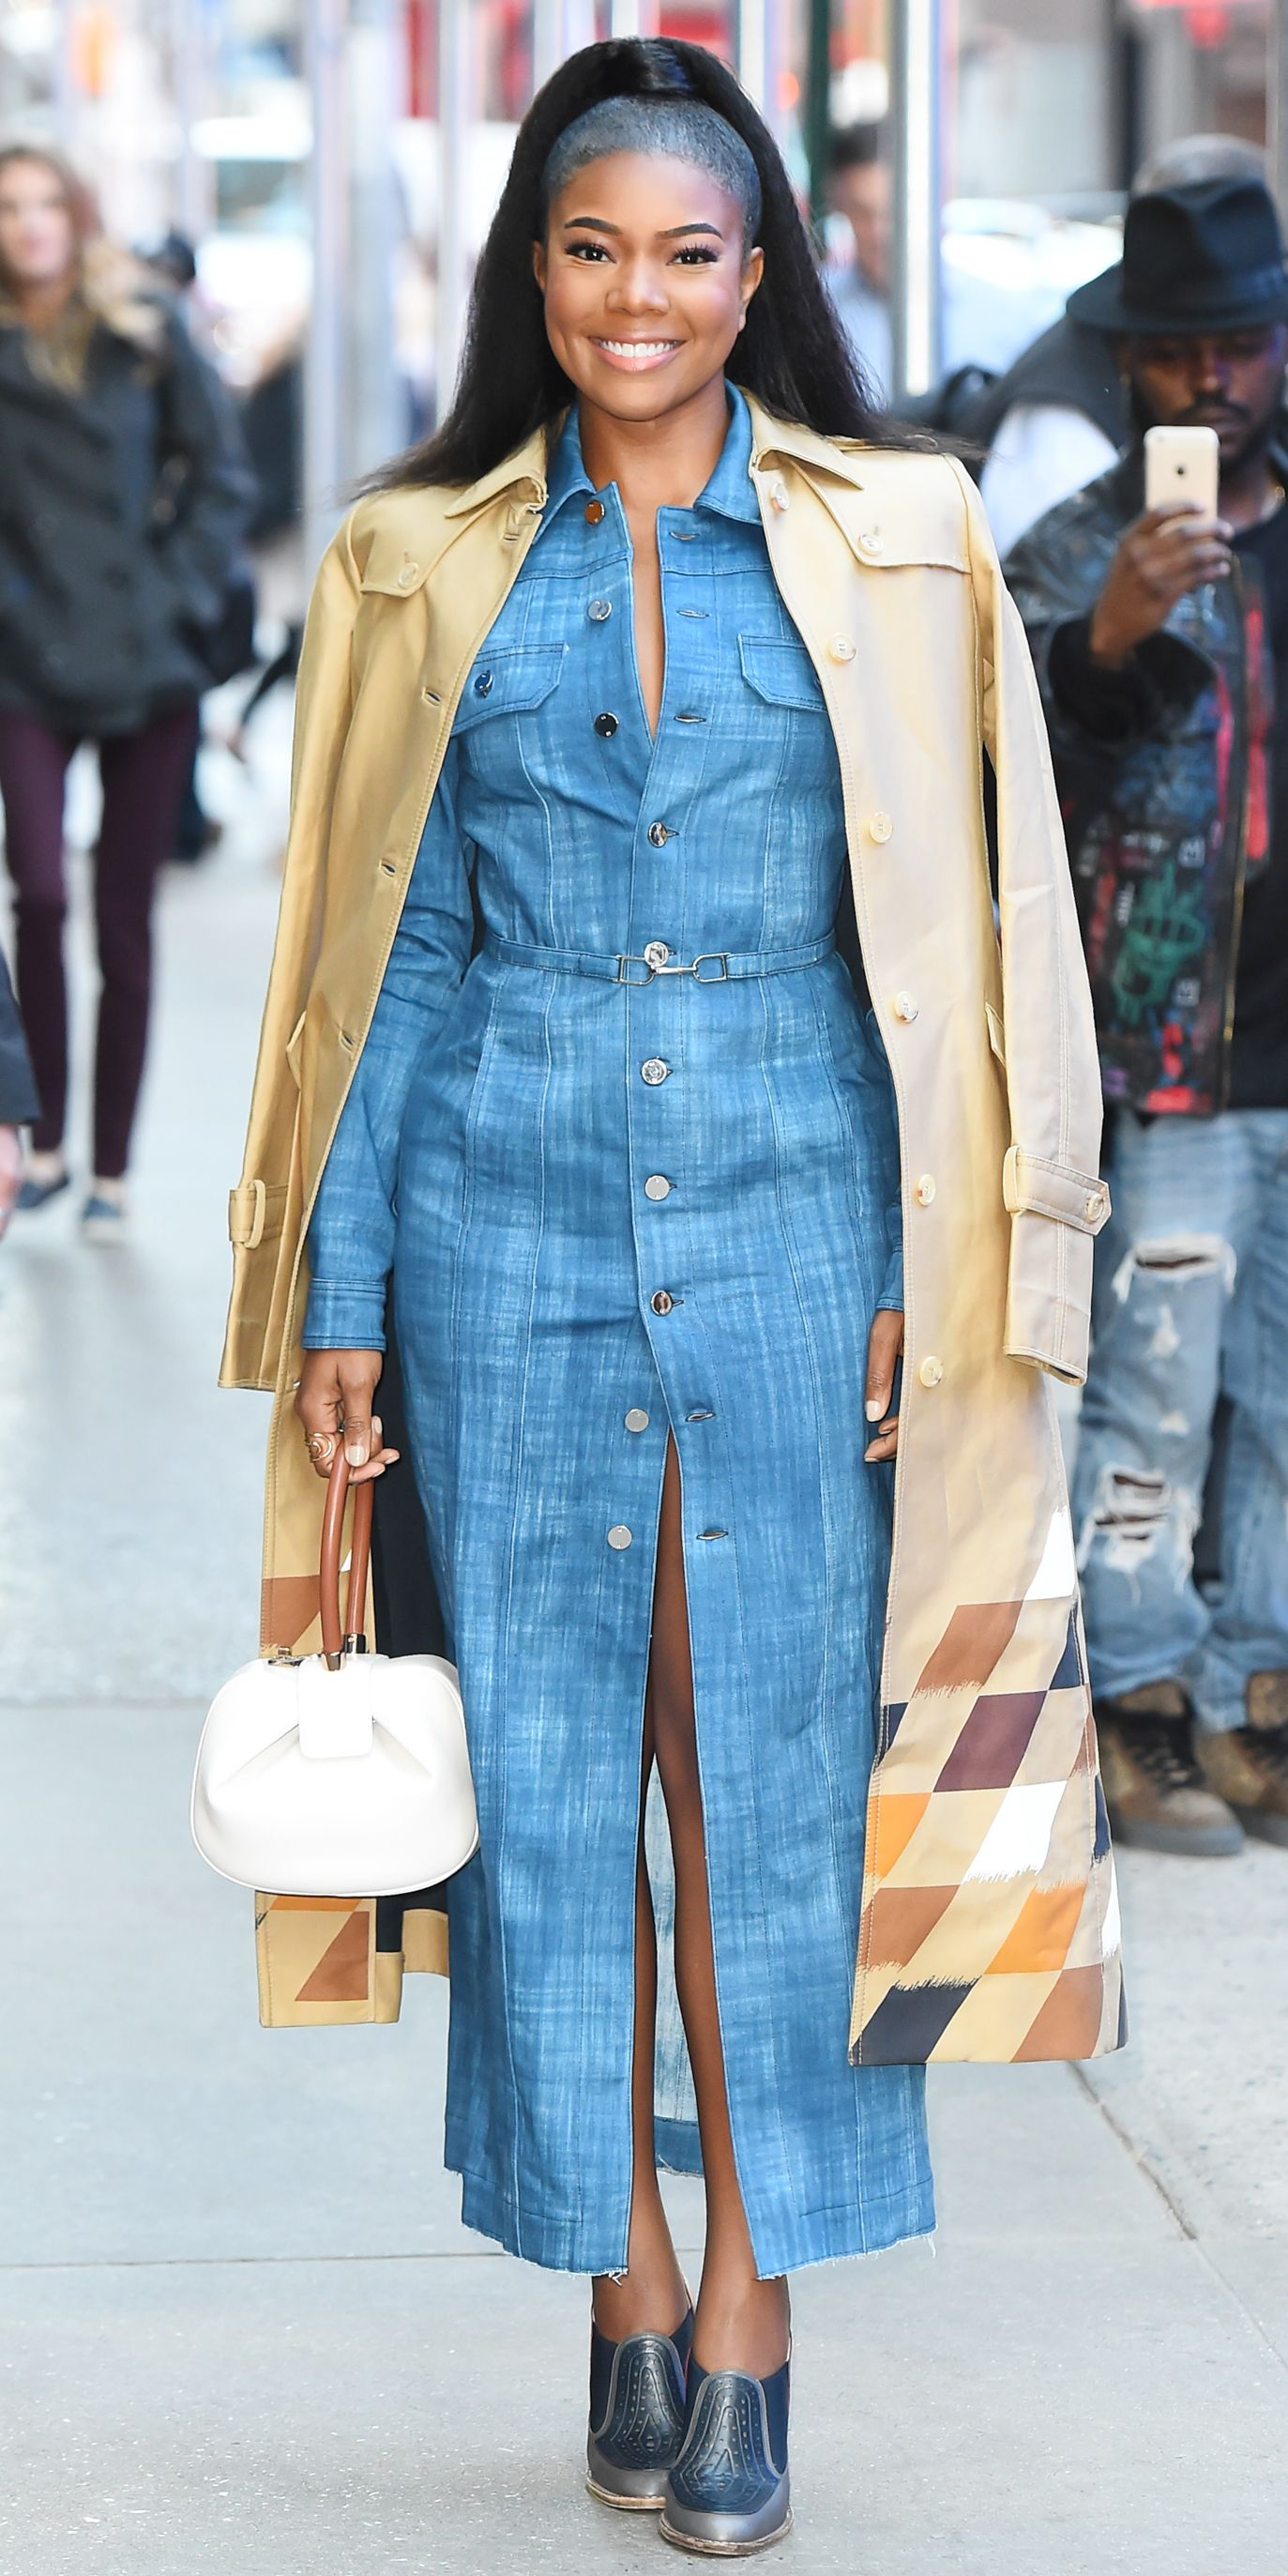 a03cdb9894a1 Gabrielle Union attended Good Morning America in the chicest denim dress  with a trench coat effortlessly draped over her shoulders.